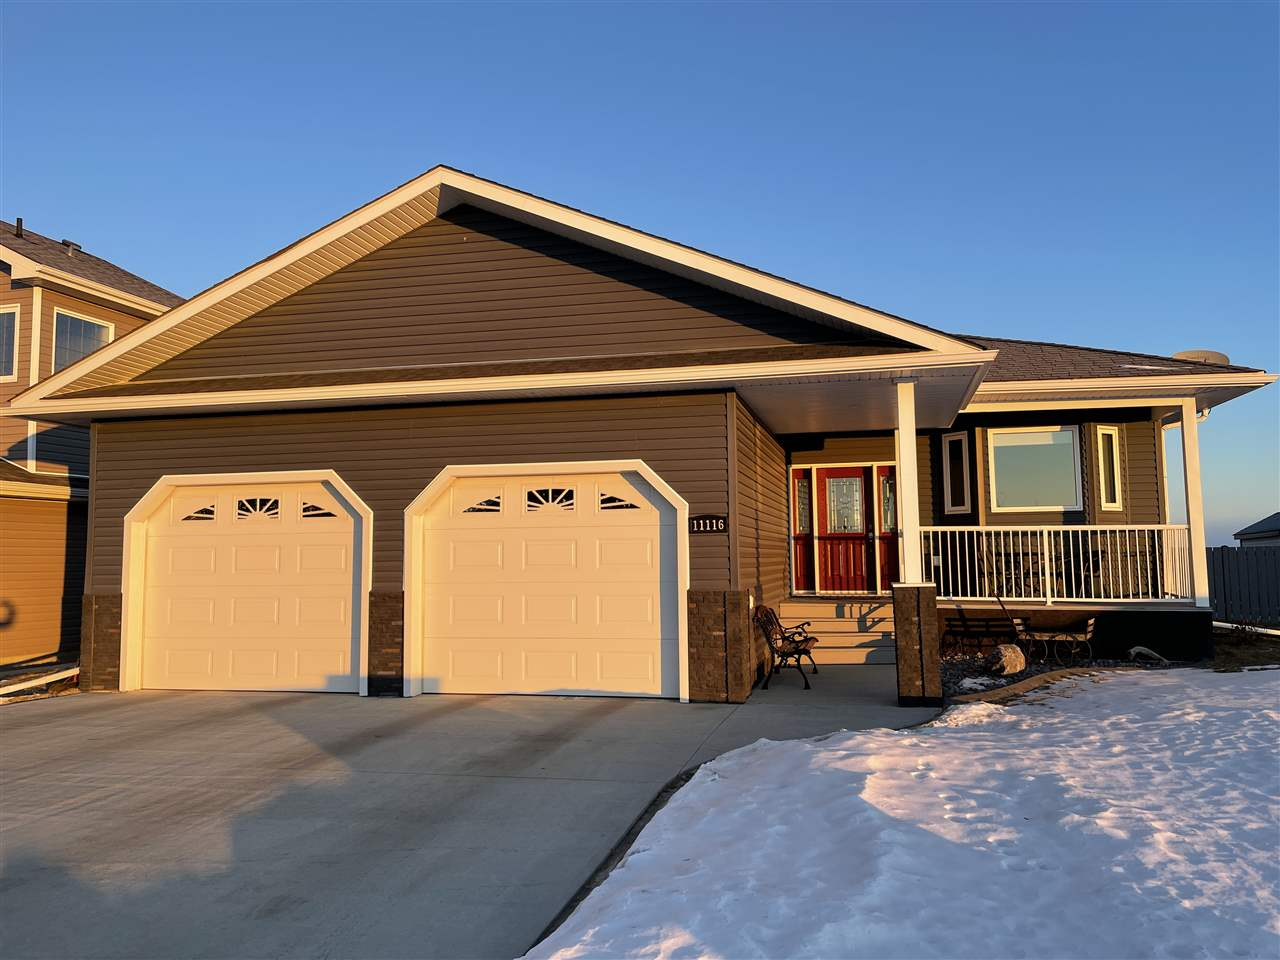 FEATURED LISTING: 11116 103 Street Westlock